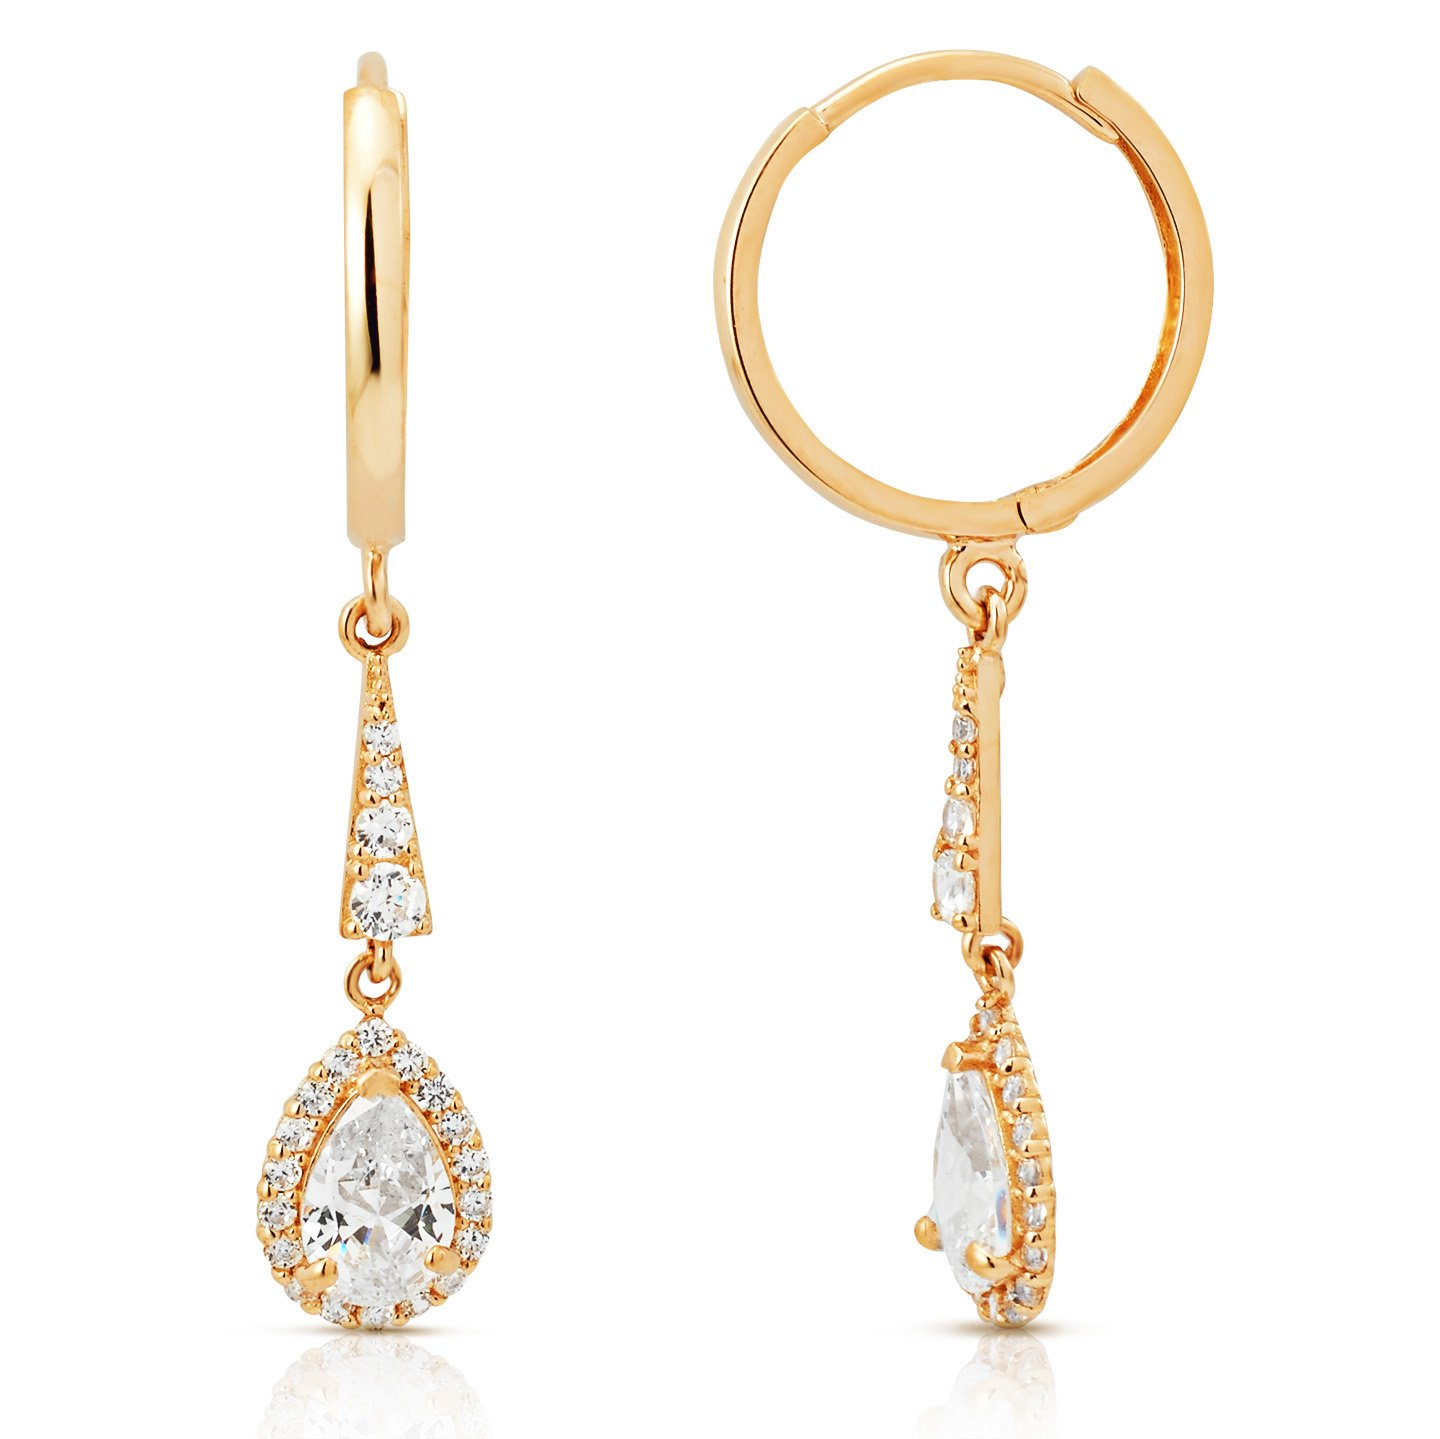 Large Pear Shaped Center CZ Halo Dangling Earrings in 14K Yellow Gold